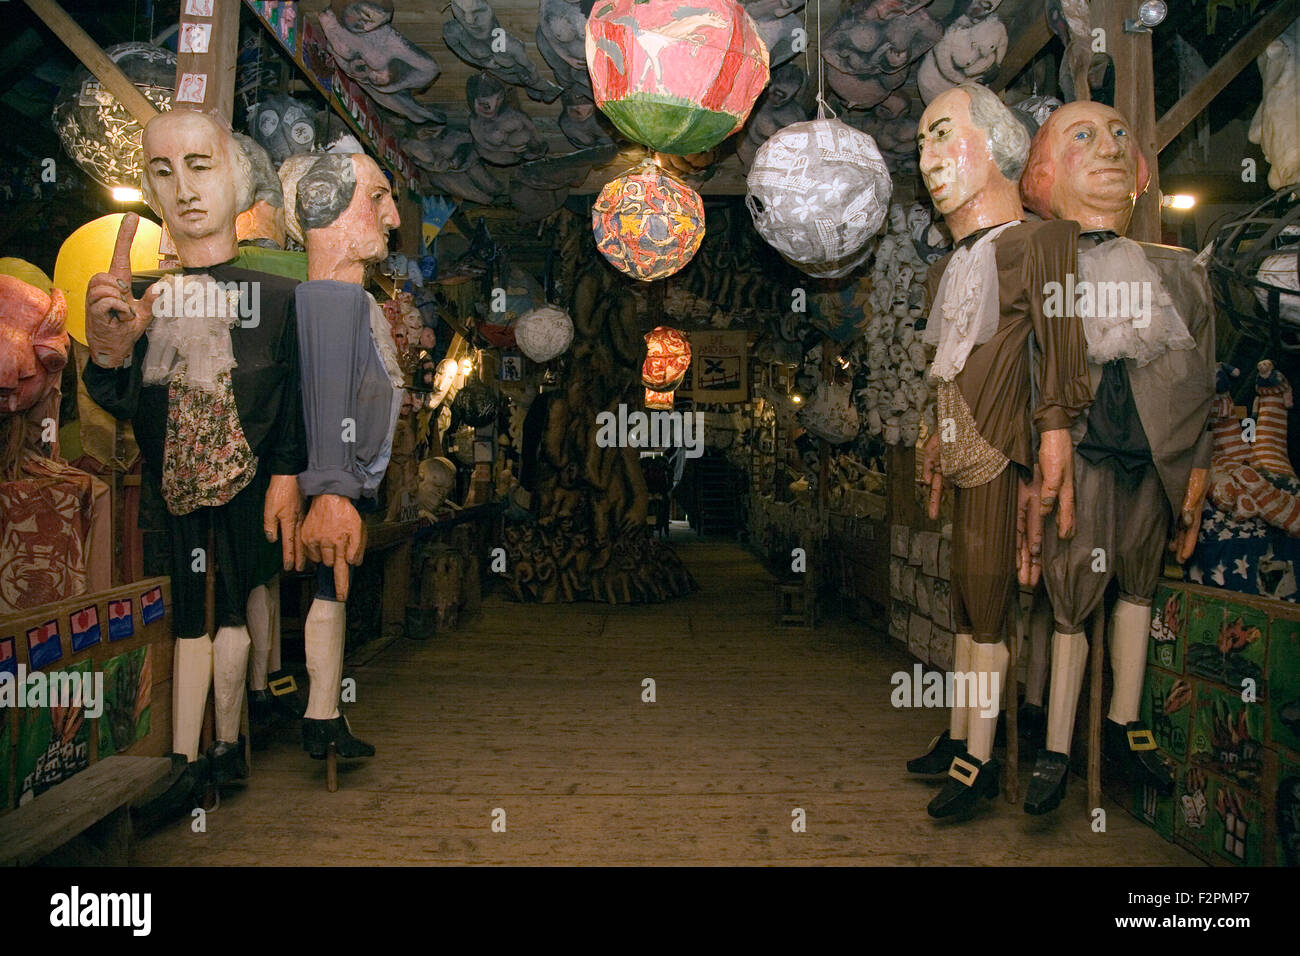 Puppets at the Bread and Puppet Museum, near Glover, Vermont, USA Stock Photo